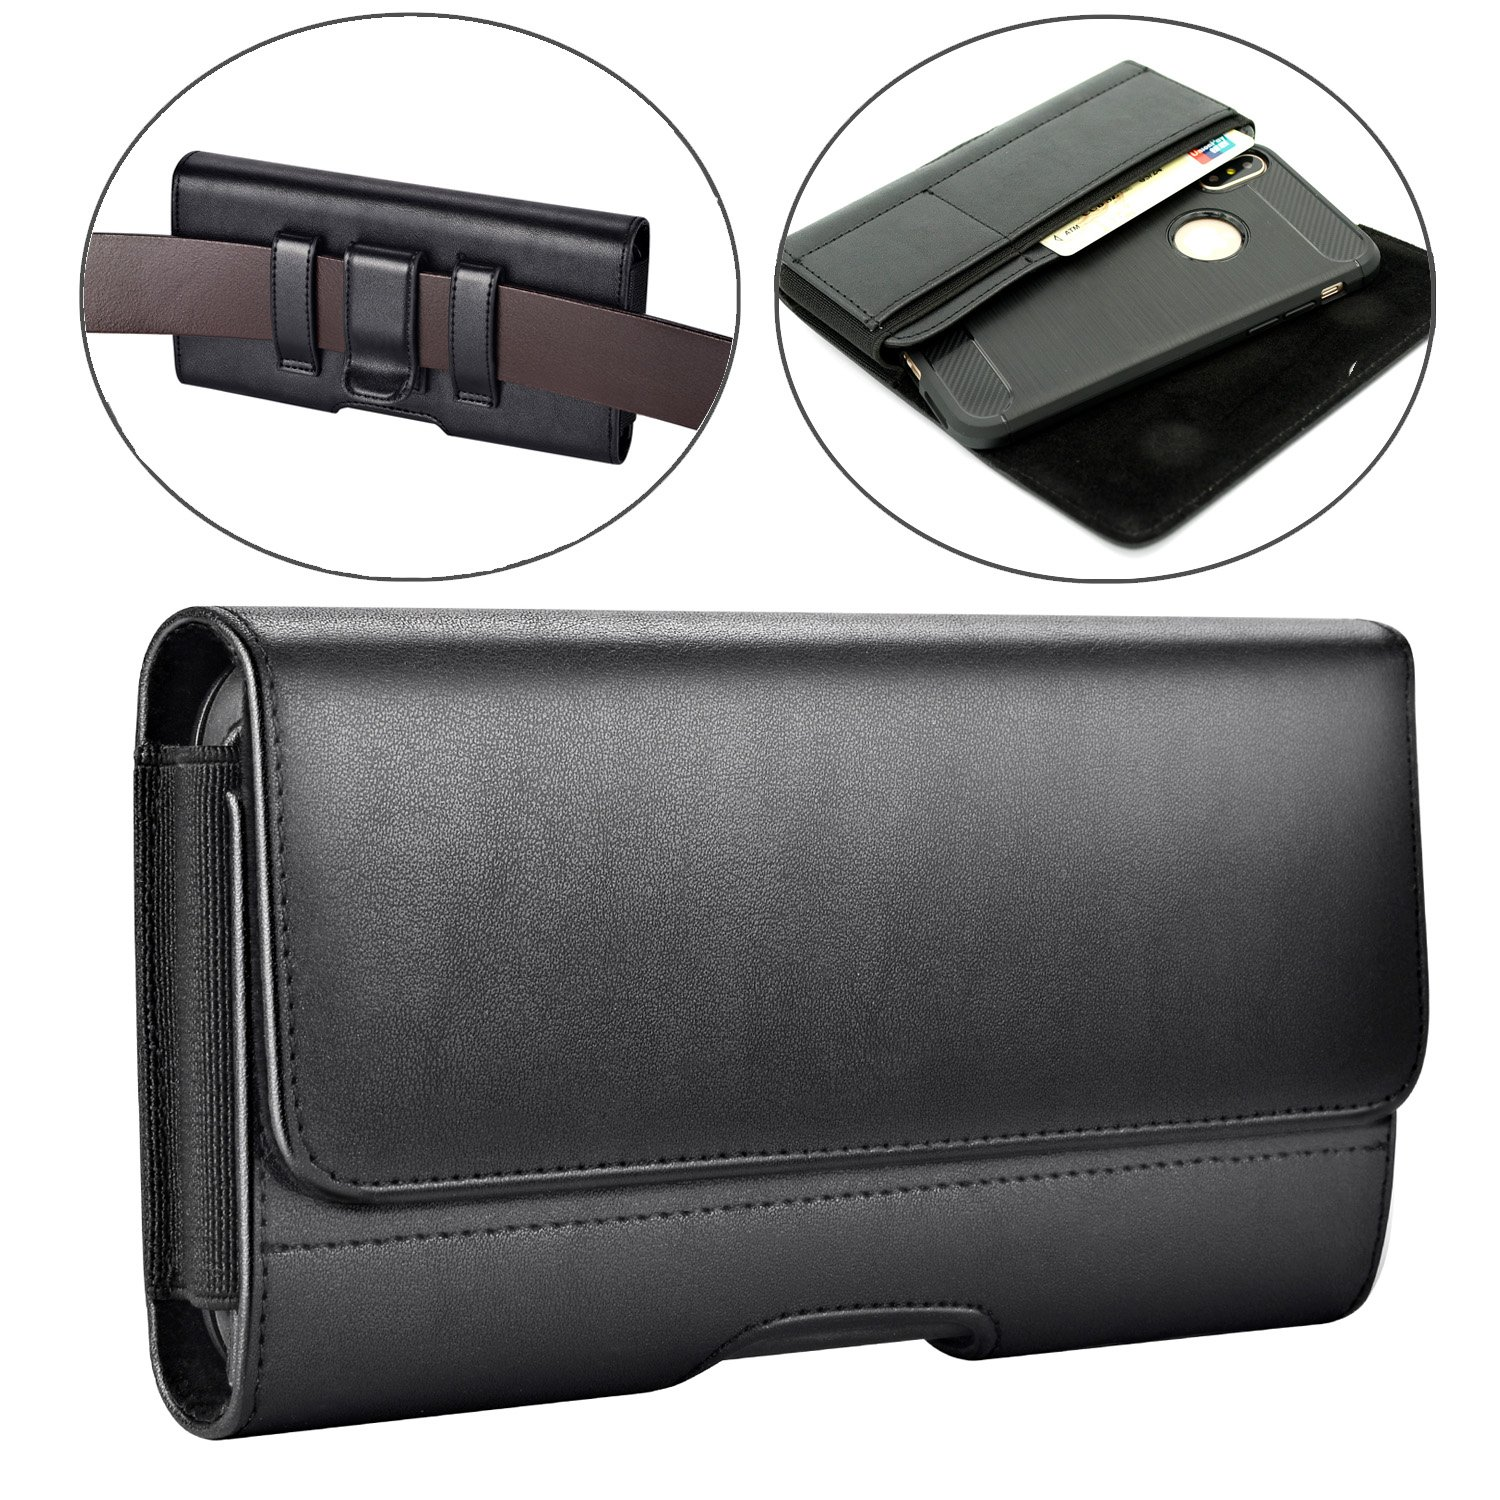 iPhone X Holster Case, Dlames Premium Leather Belt Clip Pouch Holster Case for Apple iPhone X / Galaxy S9 (Fit with a Thin Case) - Built In Card Slot Wallet Case - Black